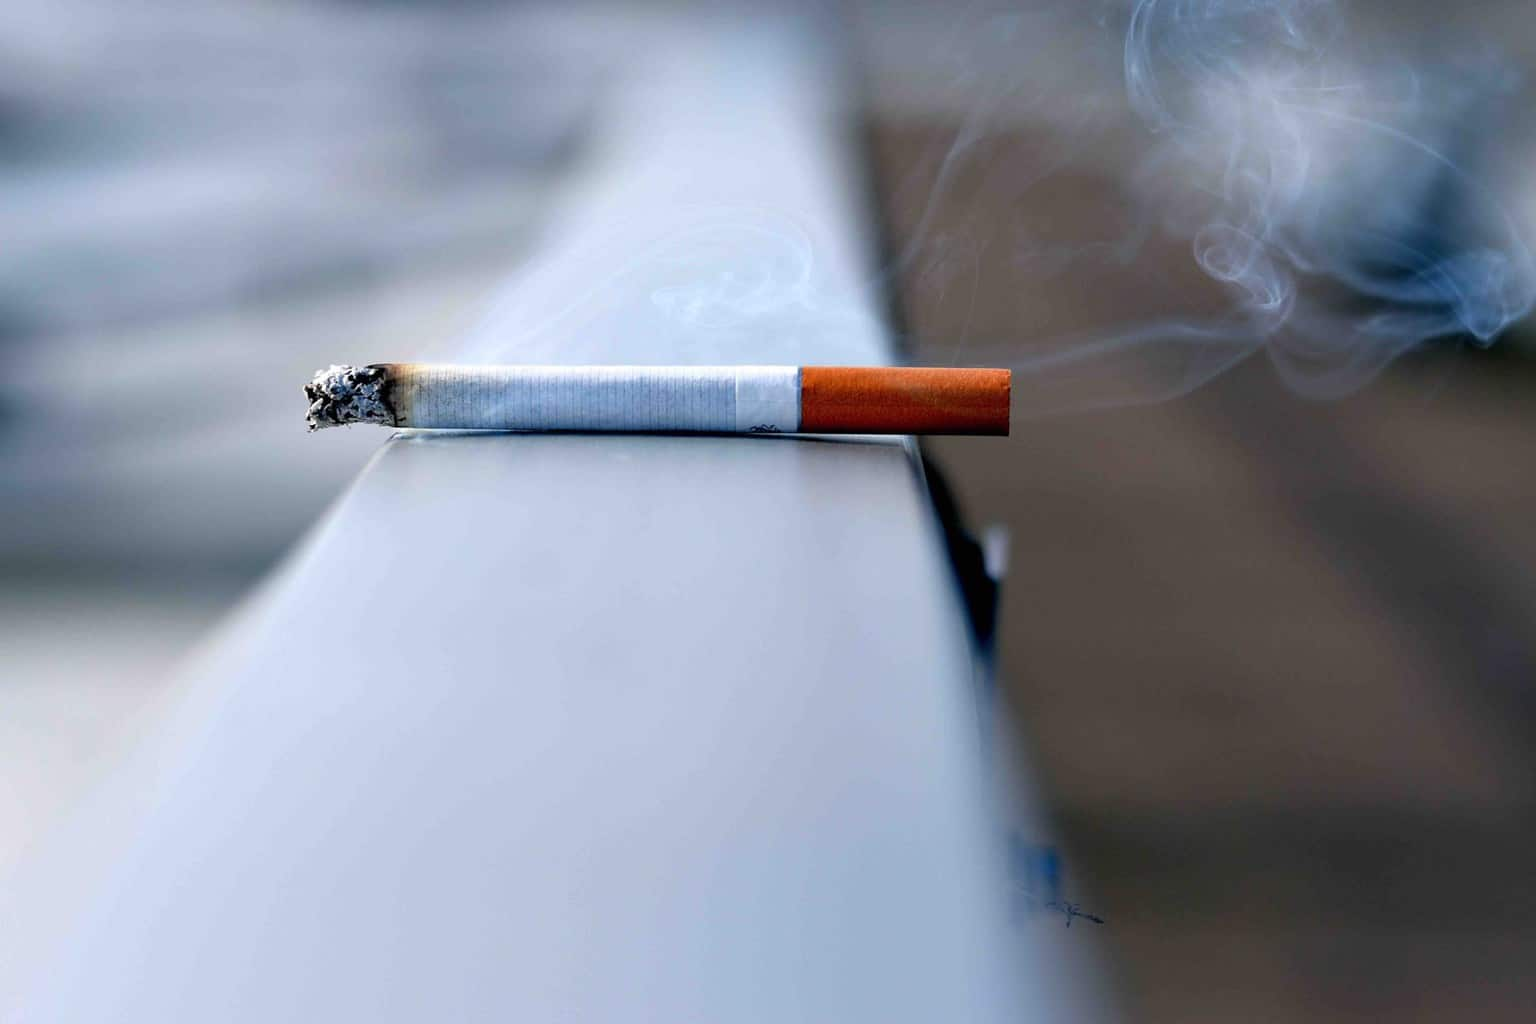 Switzerland Bans Smoking on Railway Platfors